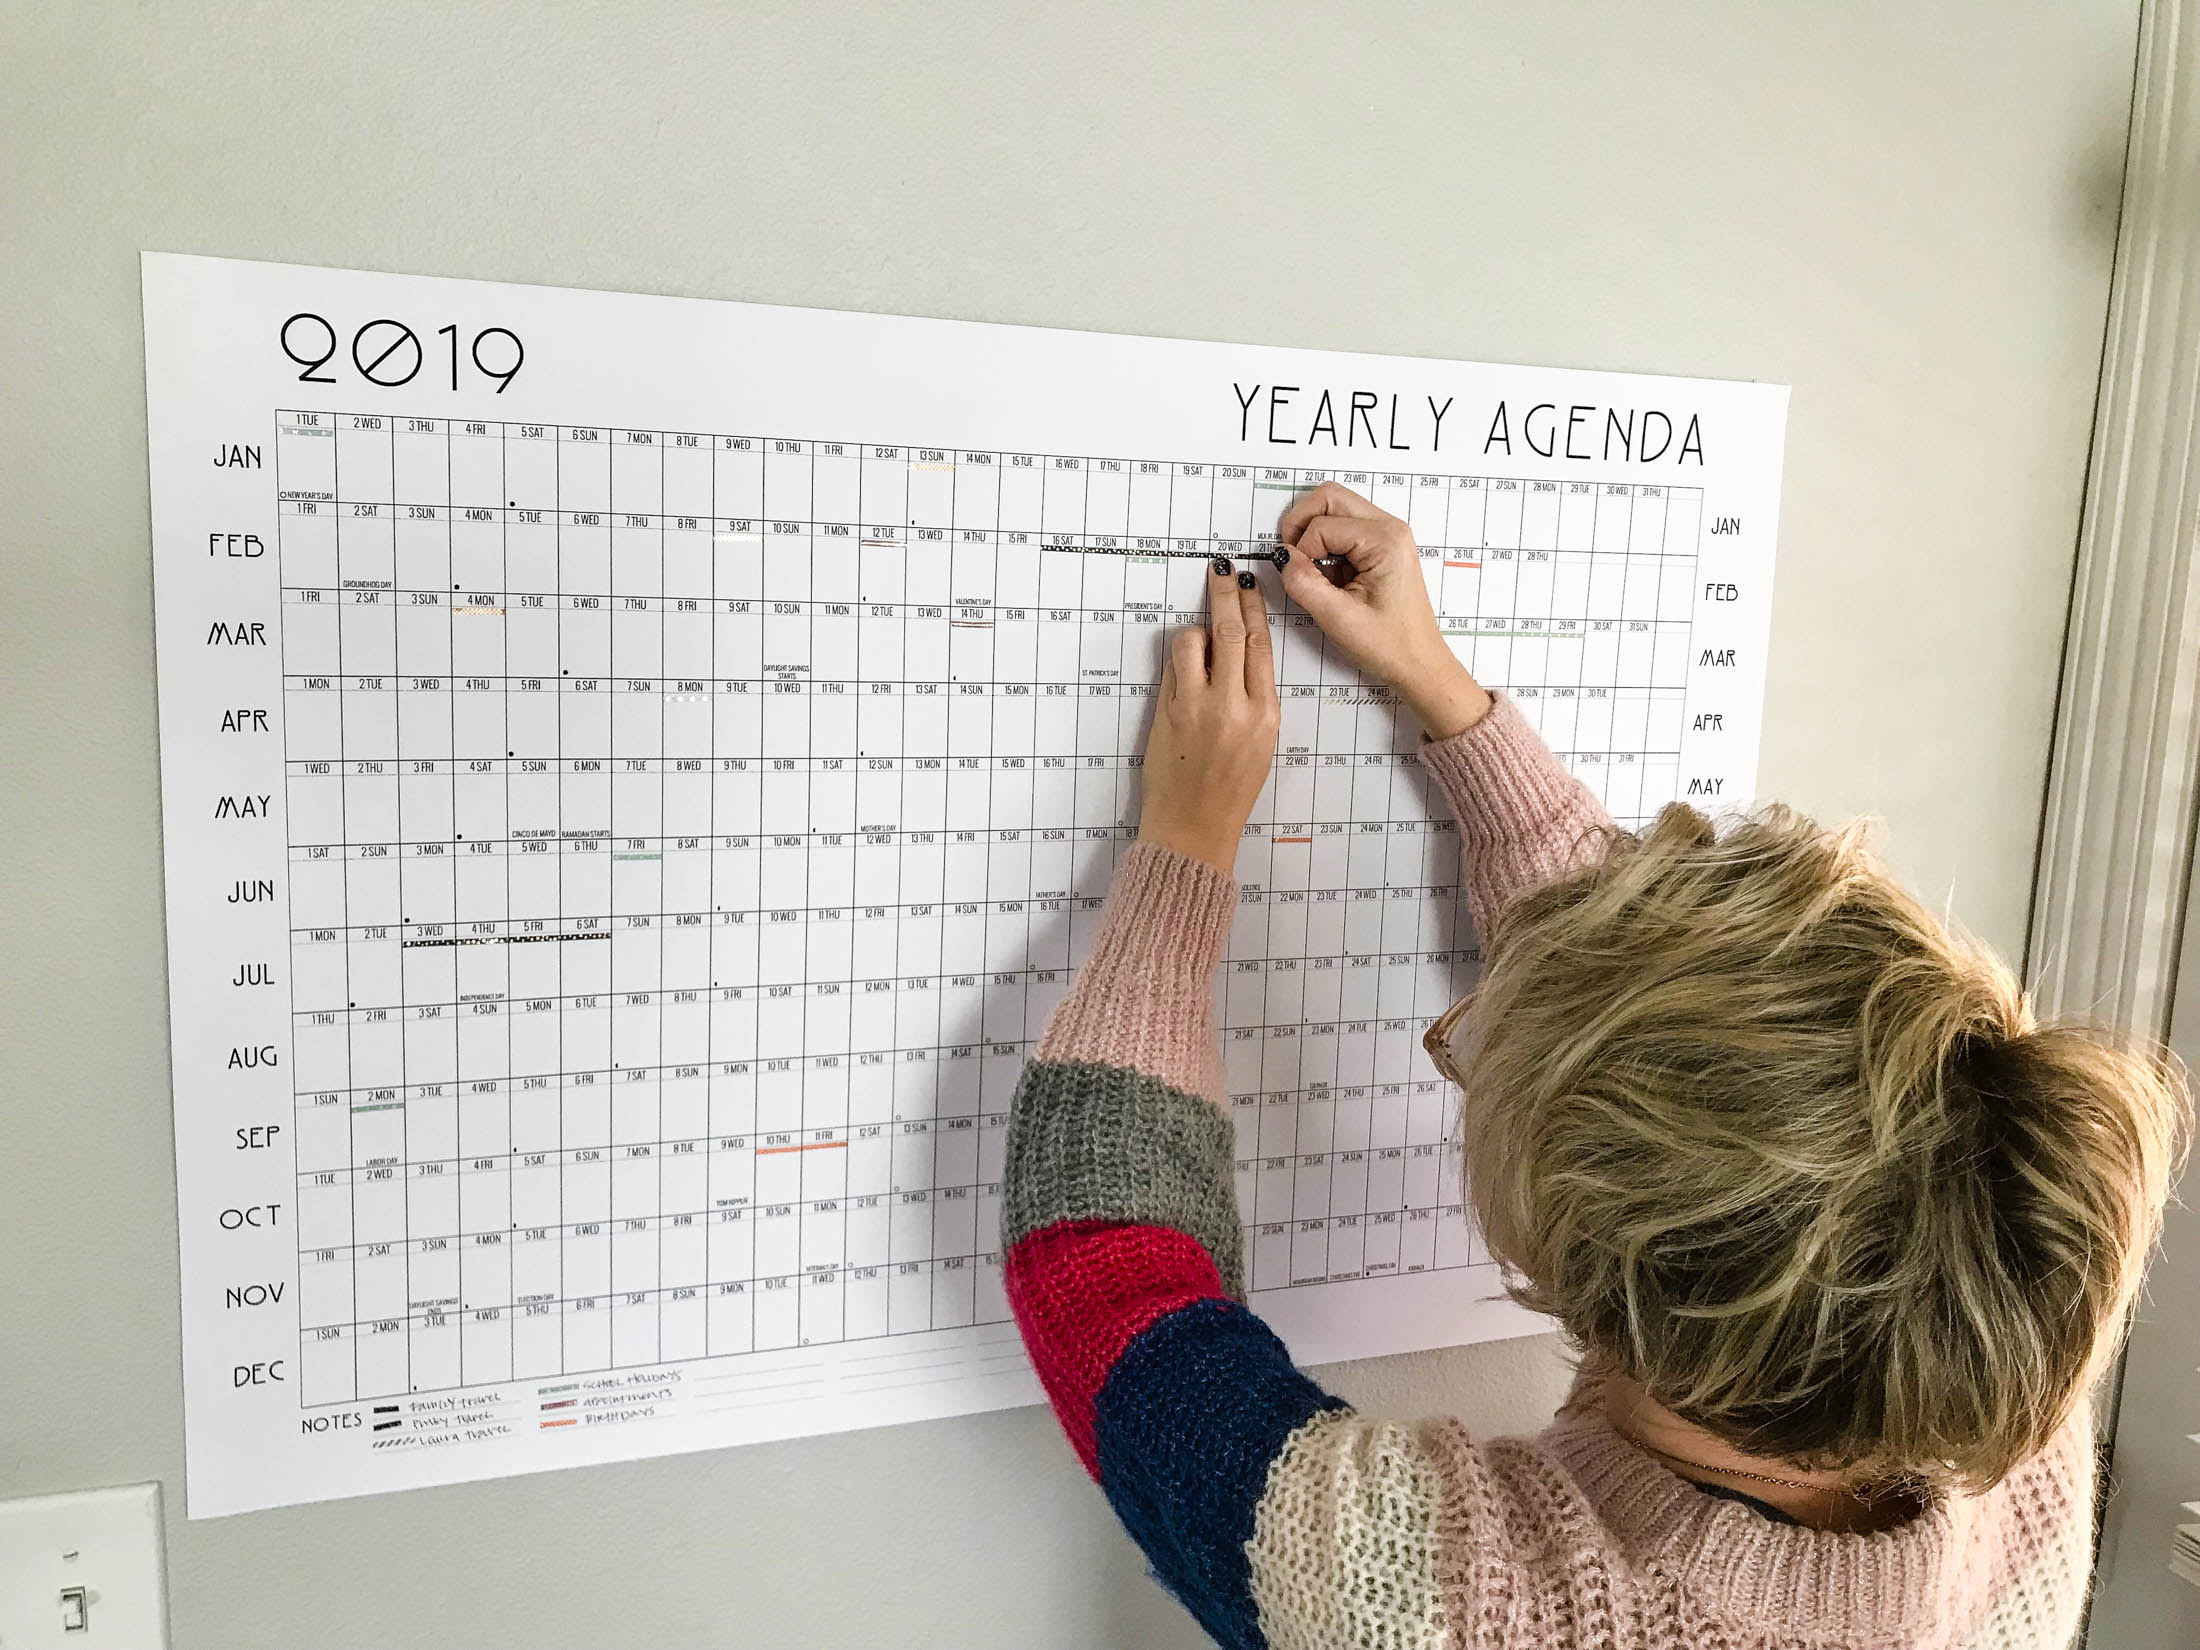 Yes, ya'll! A year-at-a-glance calendar + washi tape coding = family planning bliss. We're so excited for travel- & project-planning fun in the new year.